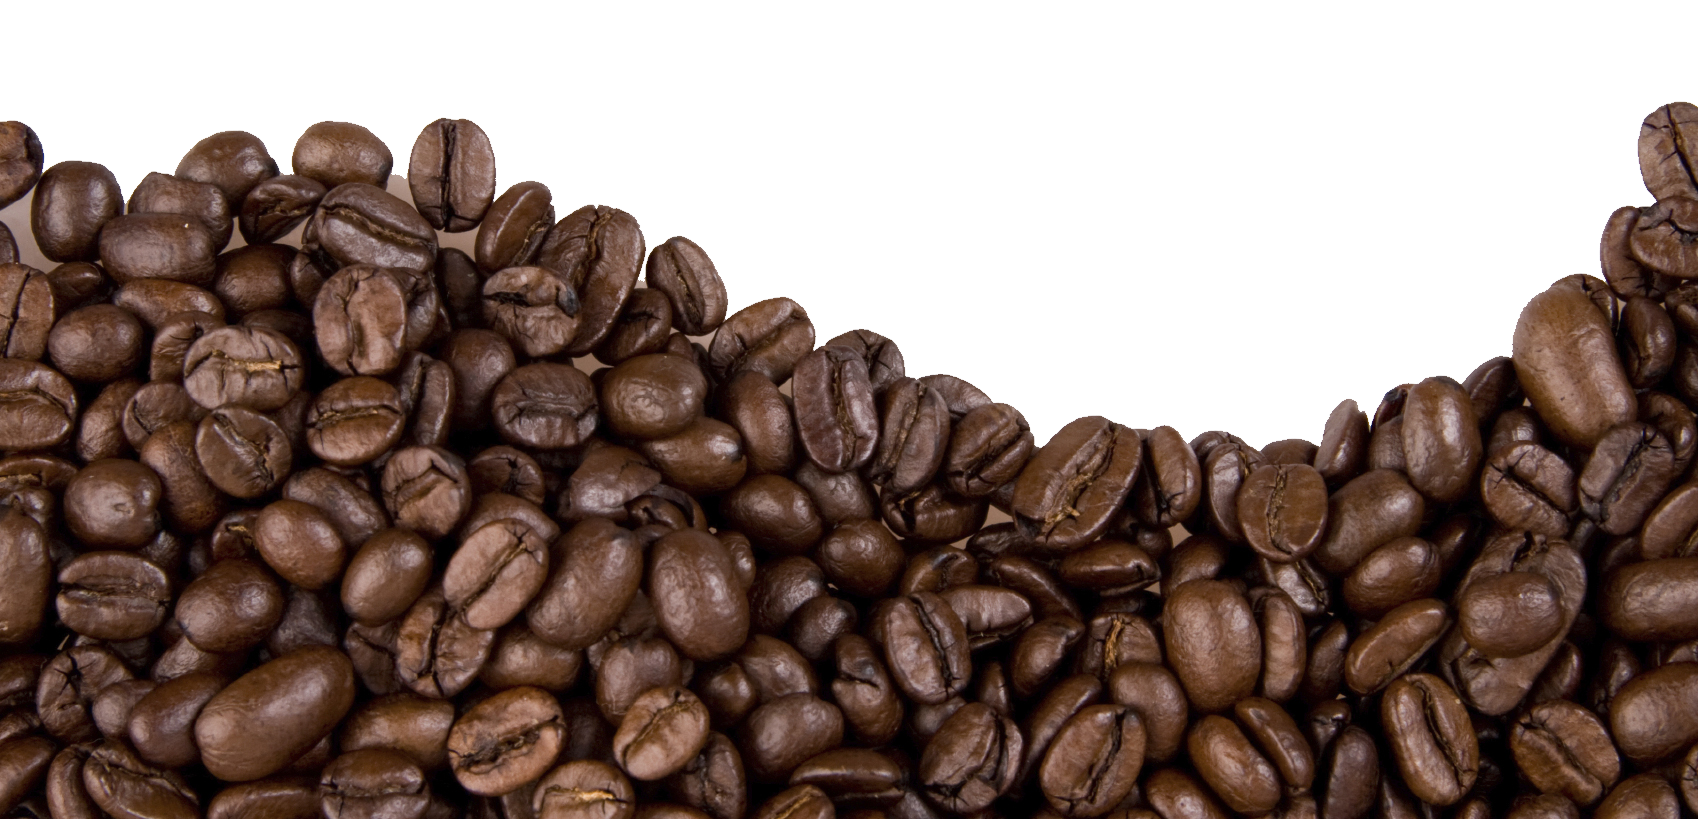 Cafe PNG HD - 128410